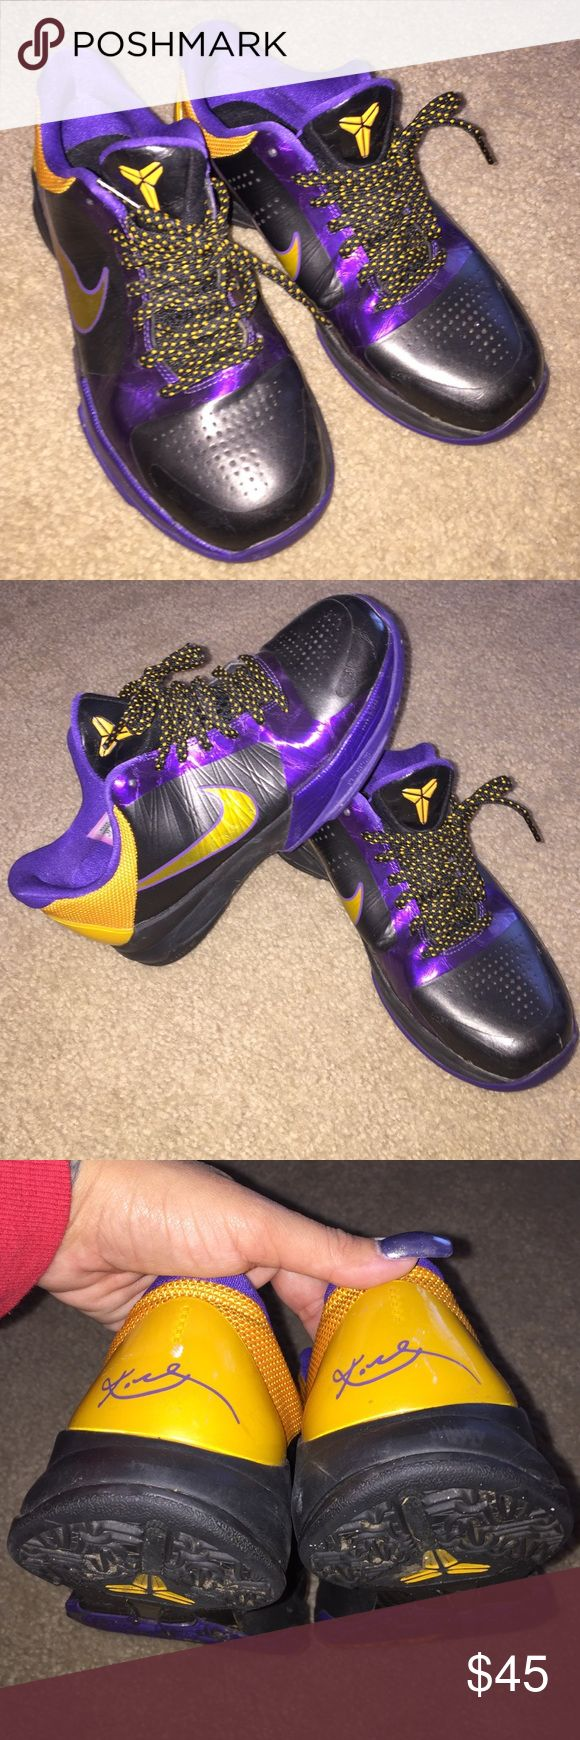 Kobe Bryant's Nike 5Y Great used condition, just minor scuffs on back yellow panels. Size 5Y, Women's 6.5/7 Nike Shoes